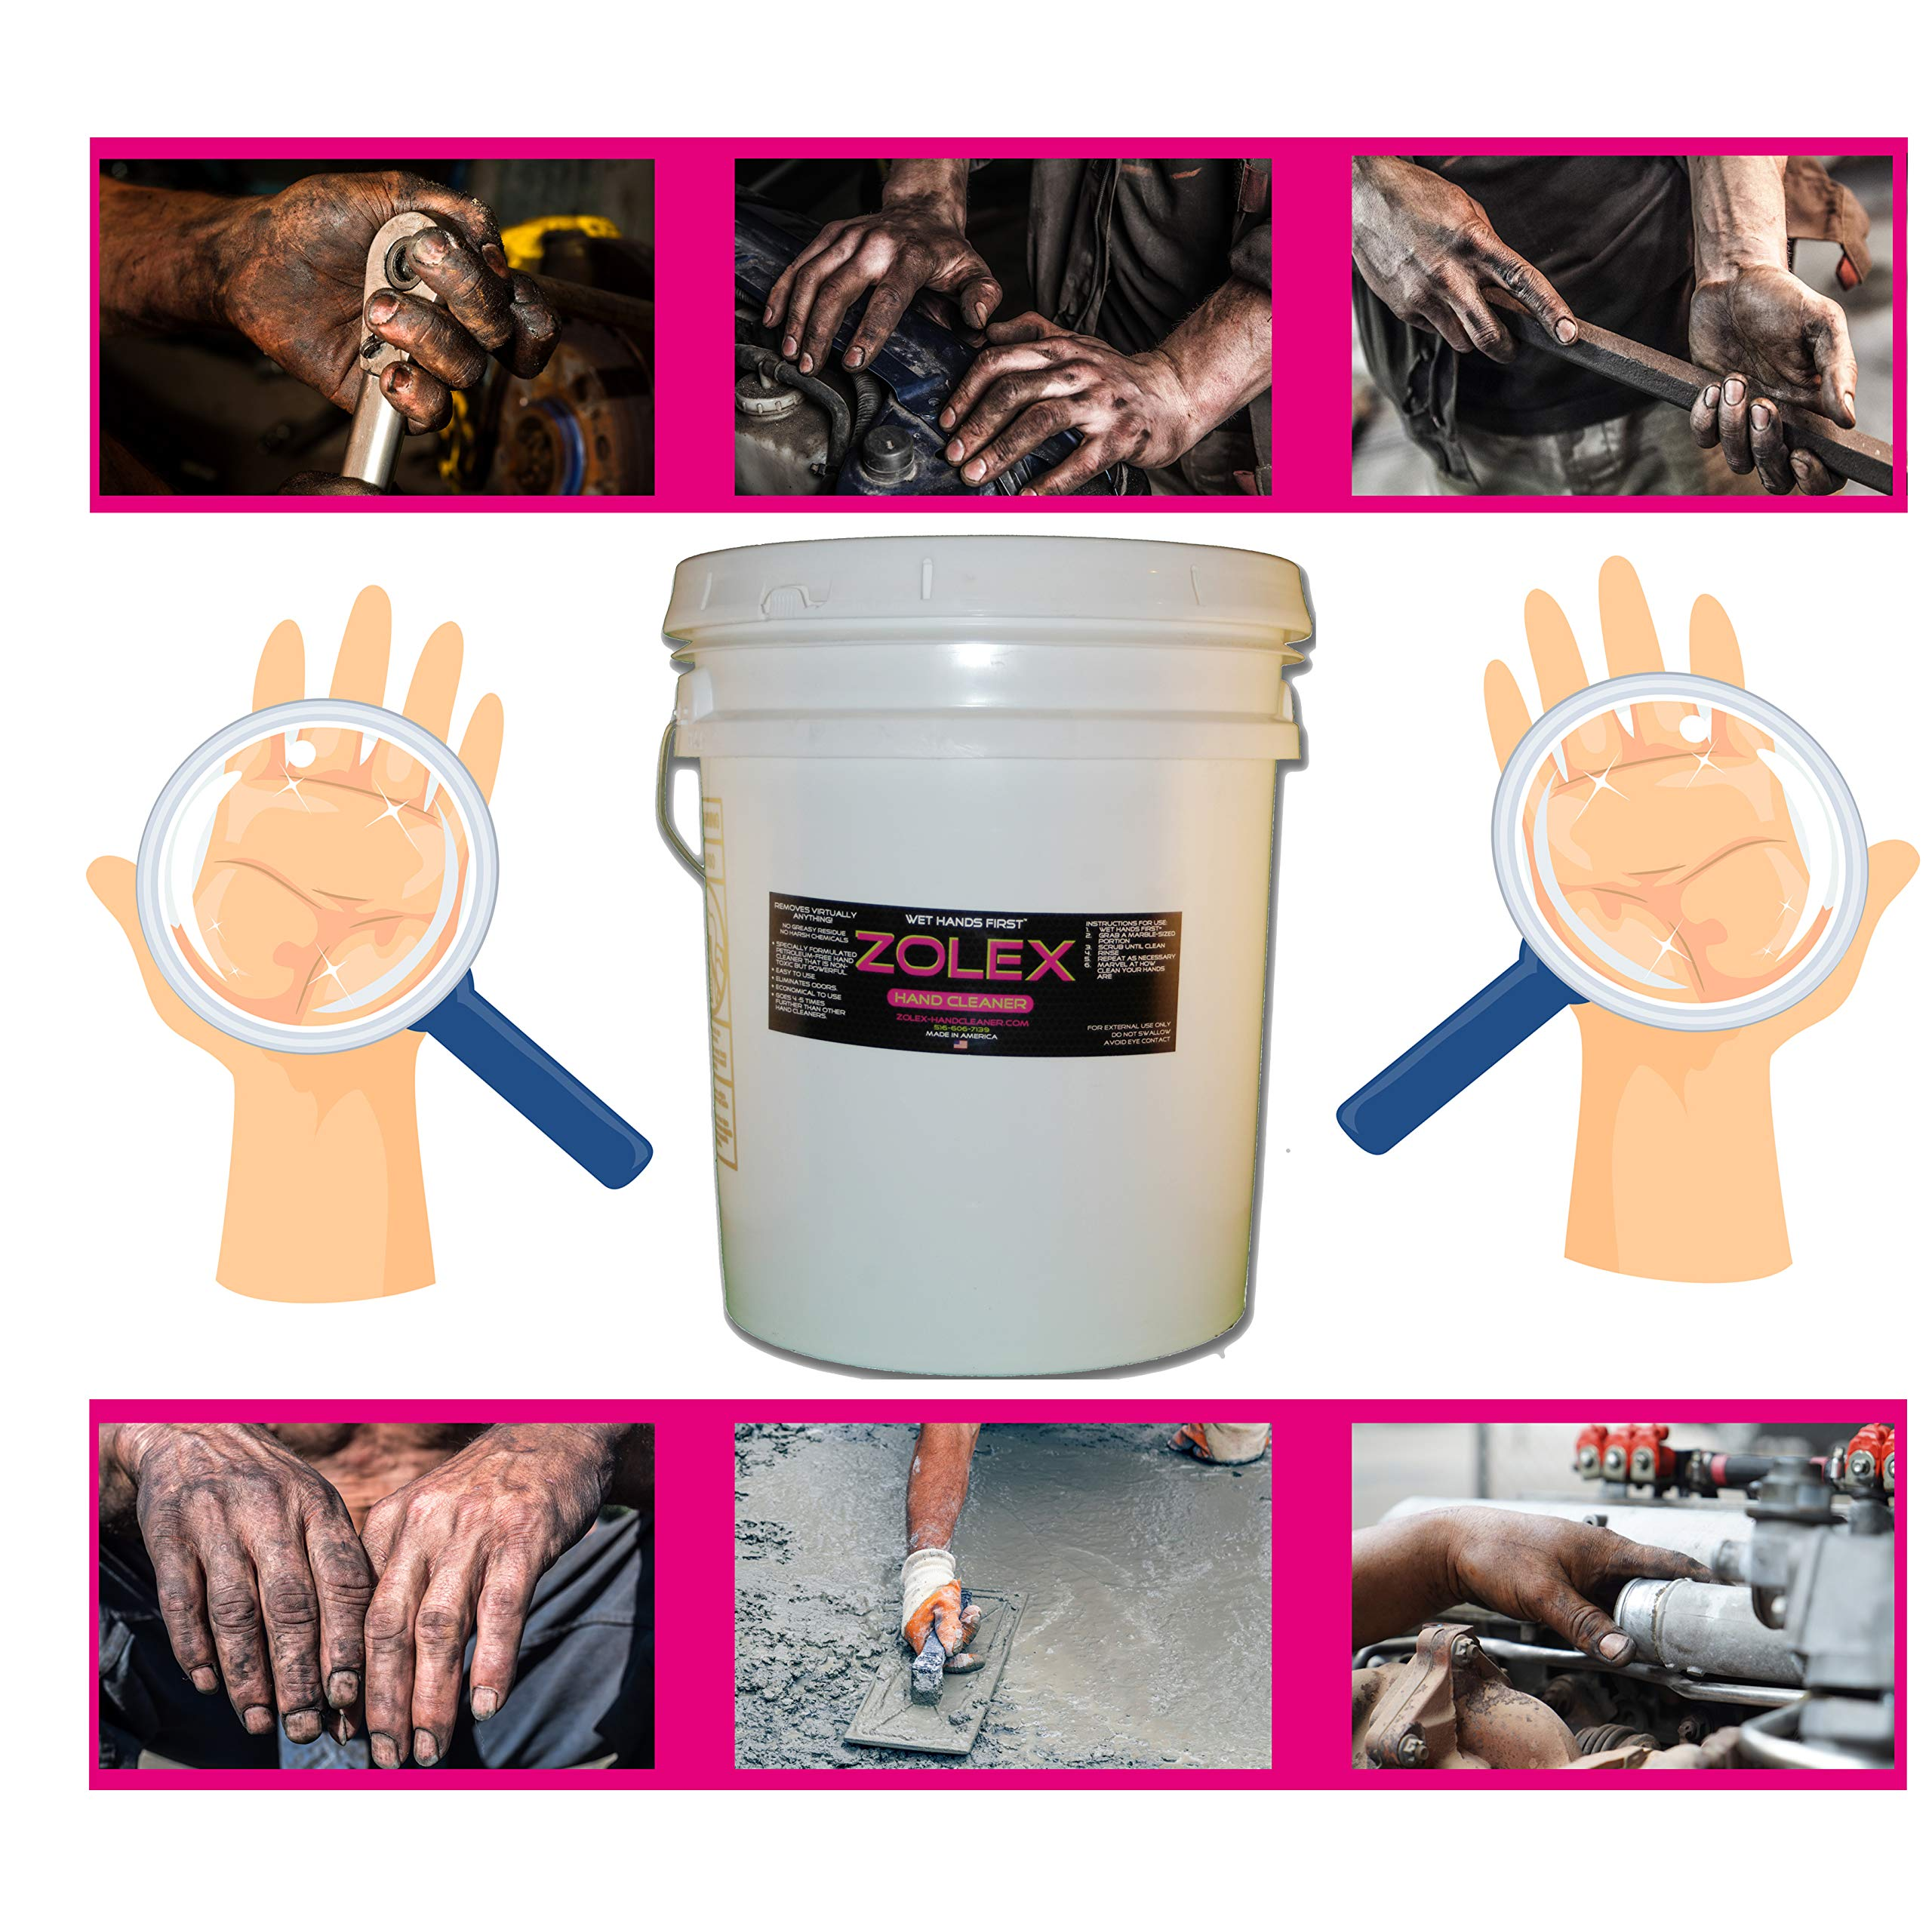 Zolex Water Activated Hand Cleaner for Working Hands| Stain Remover for Heavy Duty Workers | Grease Remover for Auto Mechanics - Non-Toxic Petroleum Free | Commercial-Sized Pail (12 lb) by Zolex (Image #4)